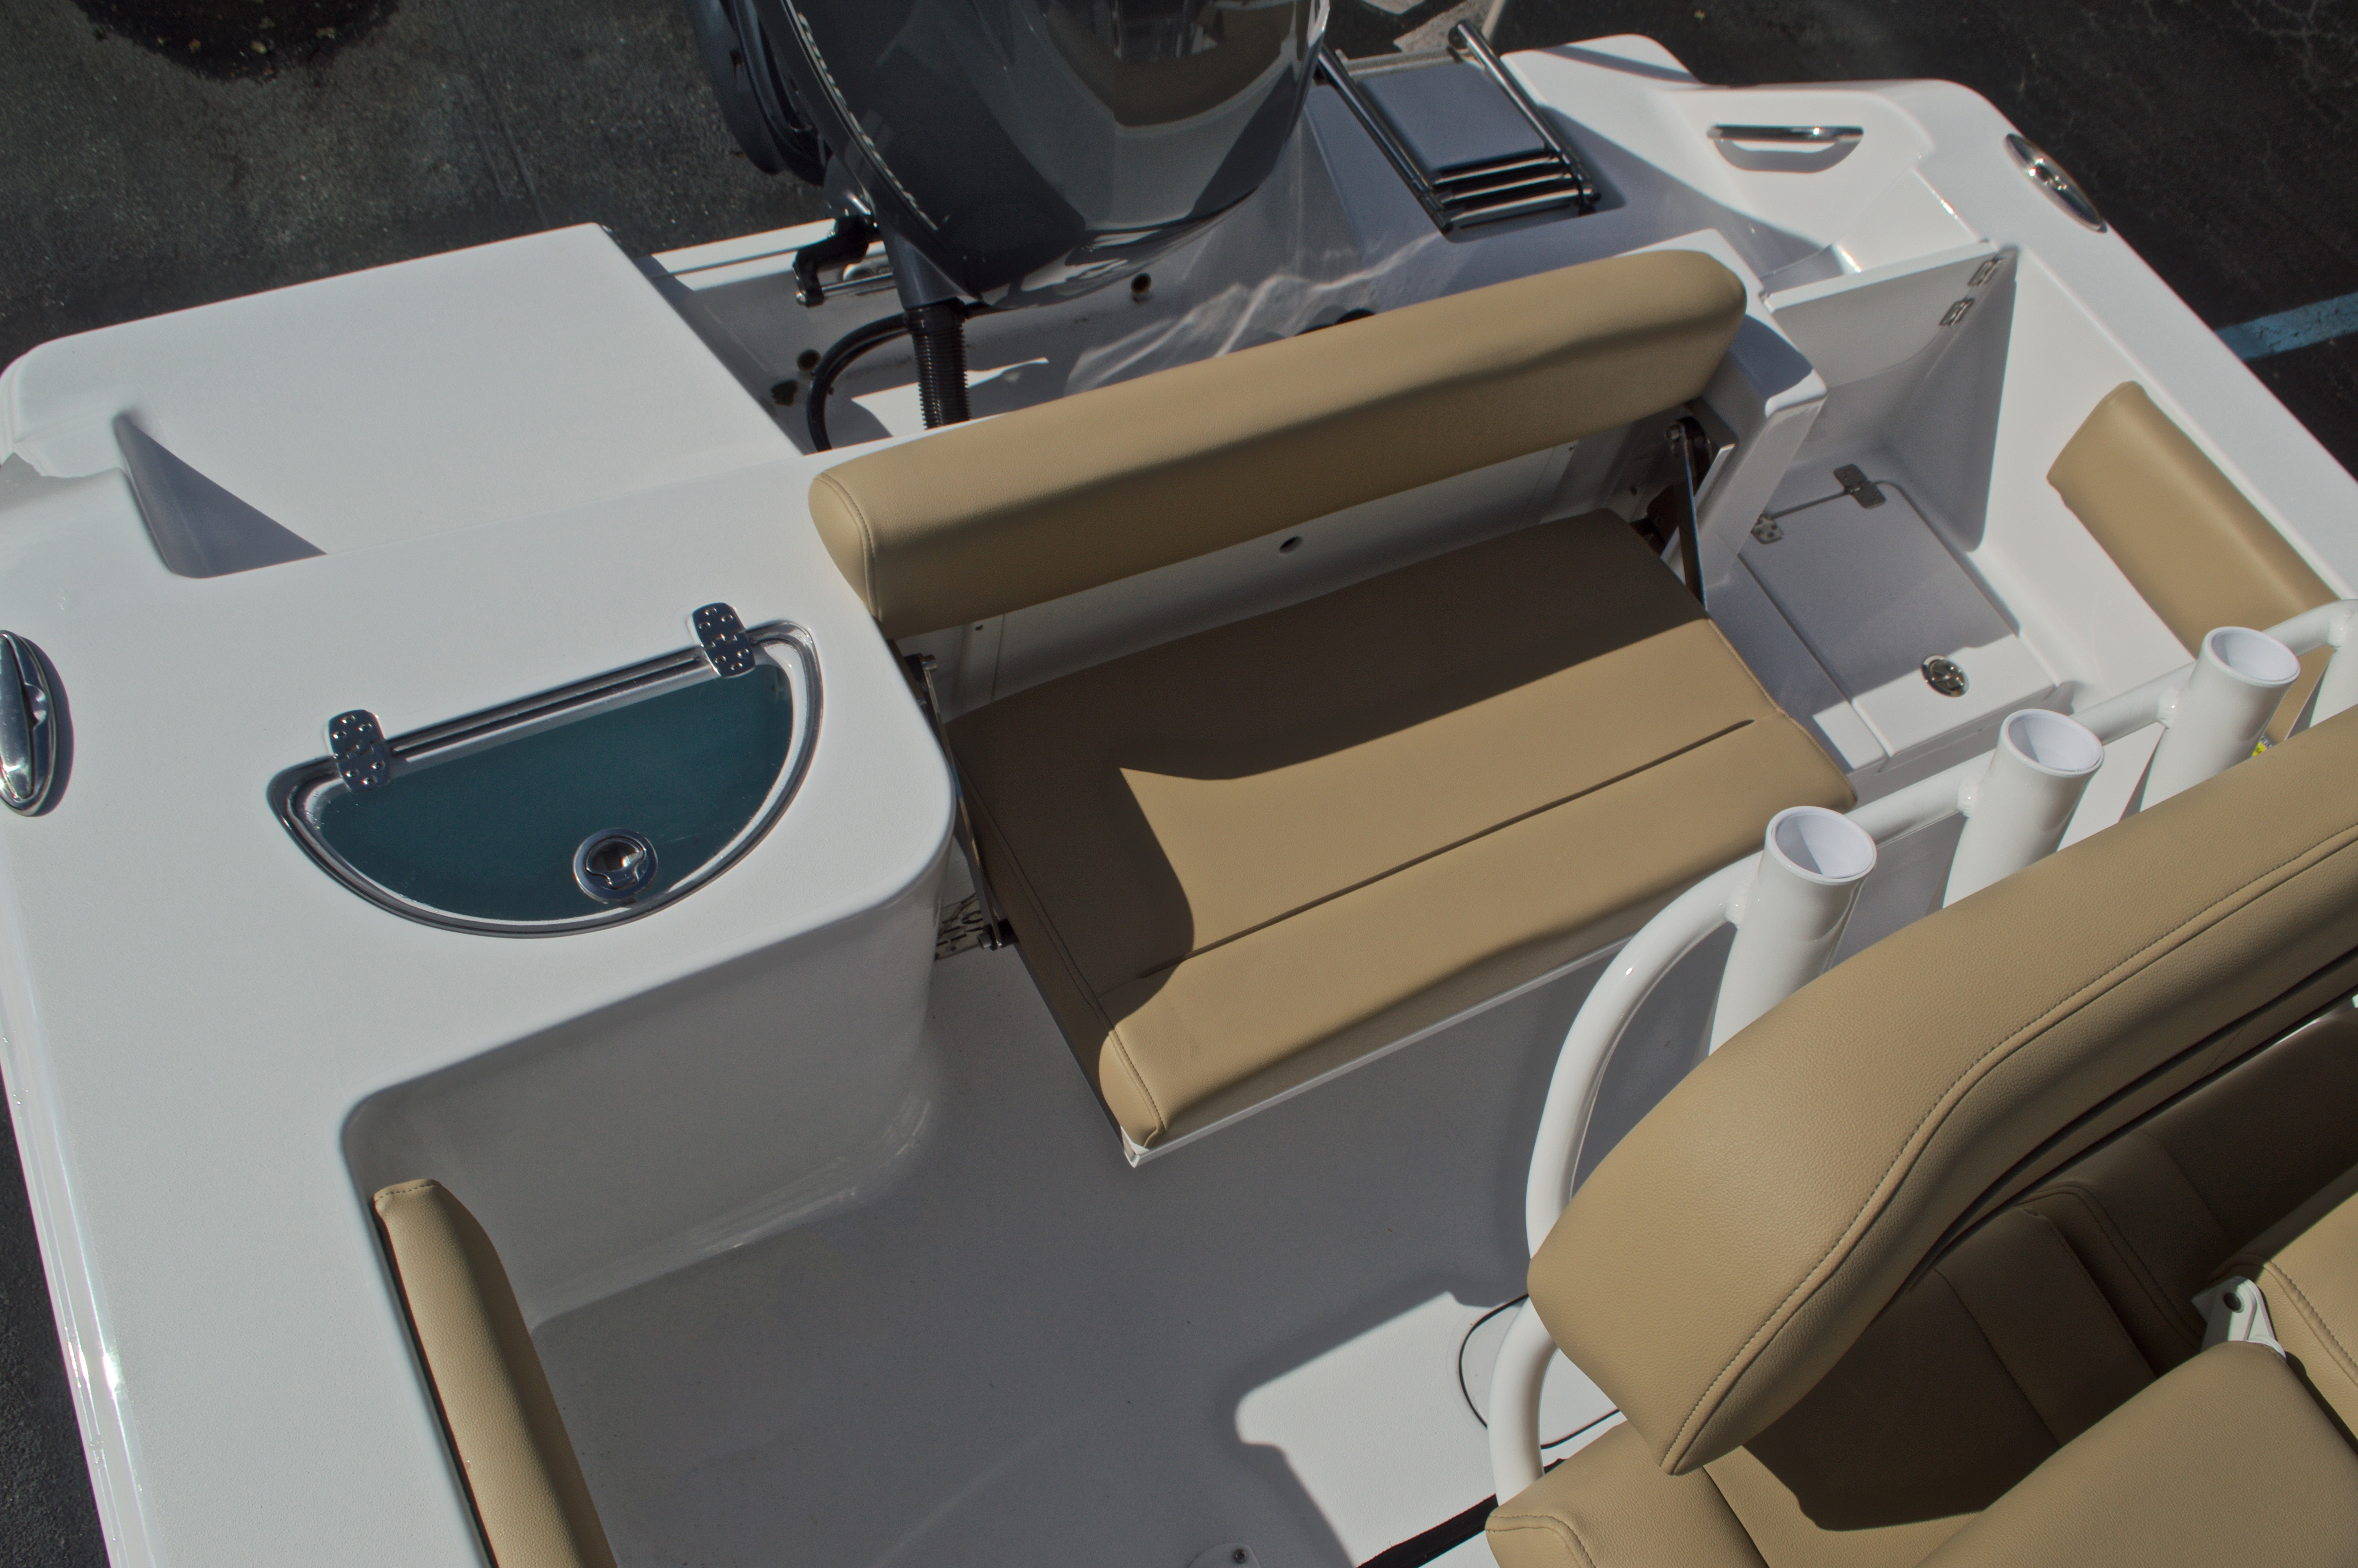 Thumbnail 16 for New 2017 Sportsman Open 212 Center Console boat for sale in West Palm Beach, FL